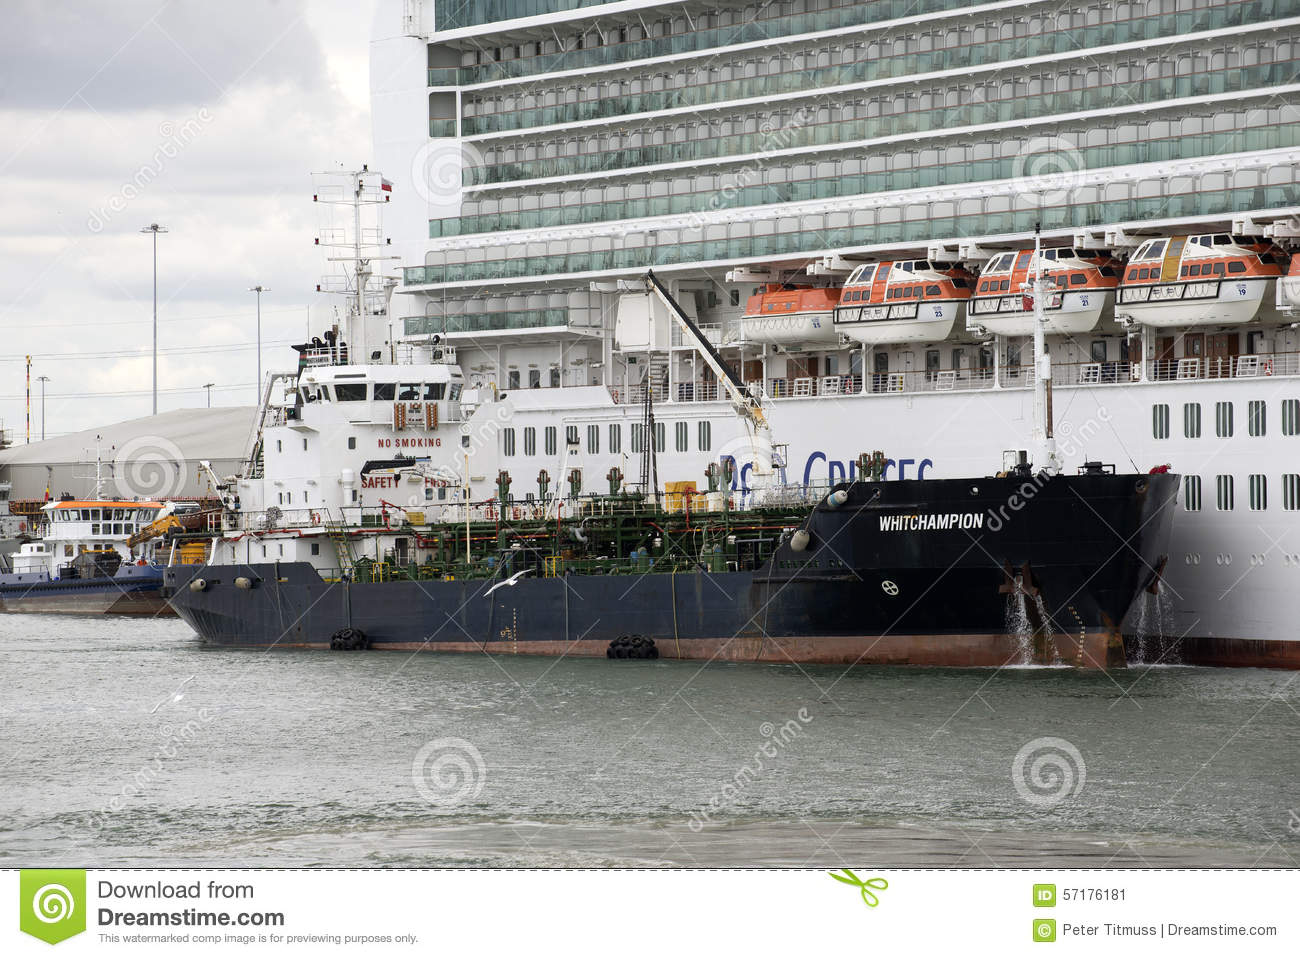 https://thumbs.dreamstime.com/z/bunkering-vessel-supply-fuel-to-cruise-ship-whitchampion-services-port-southampton-uk-57176181.jpg